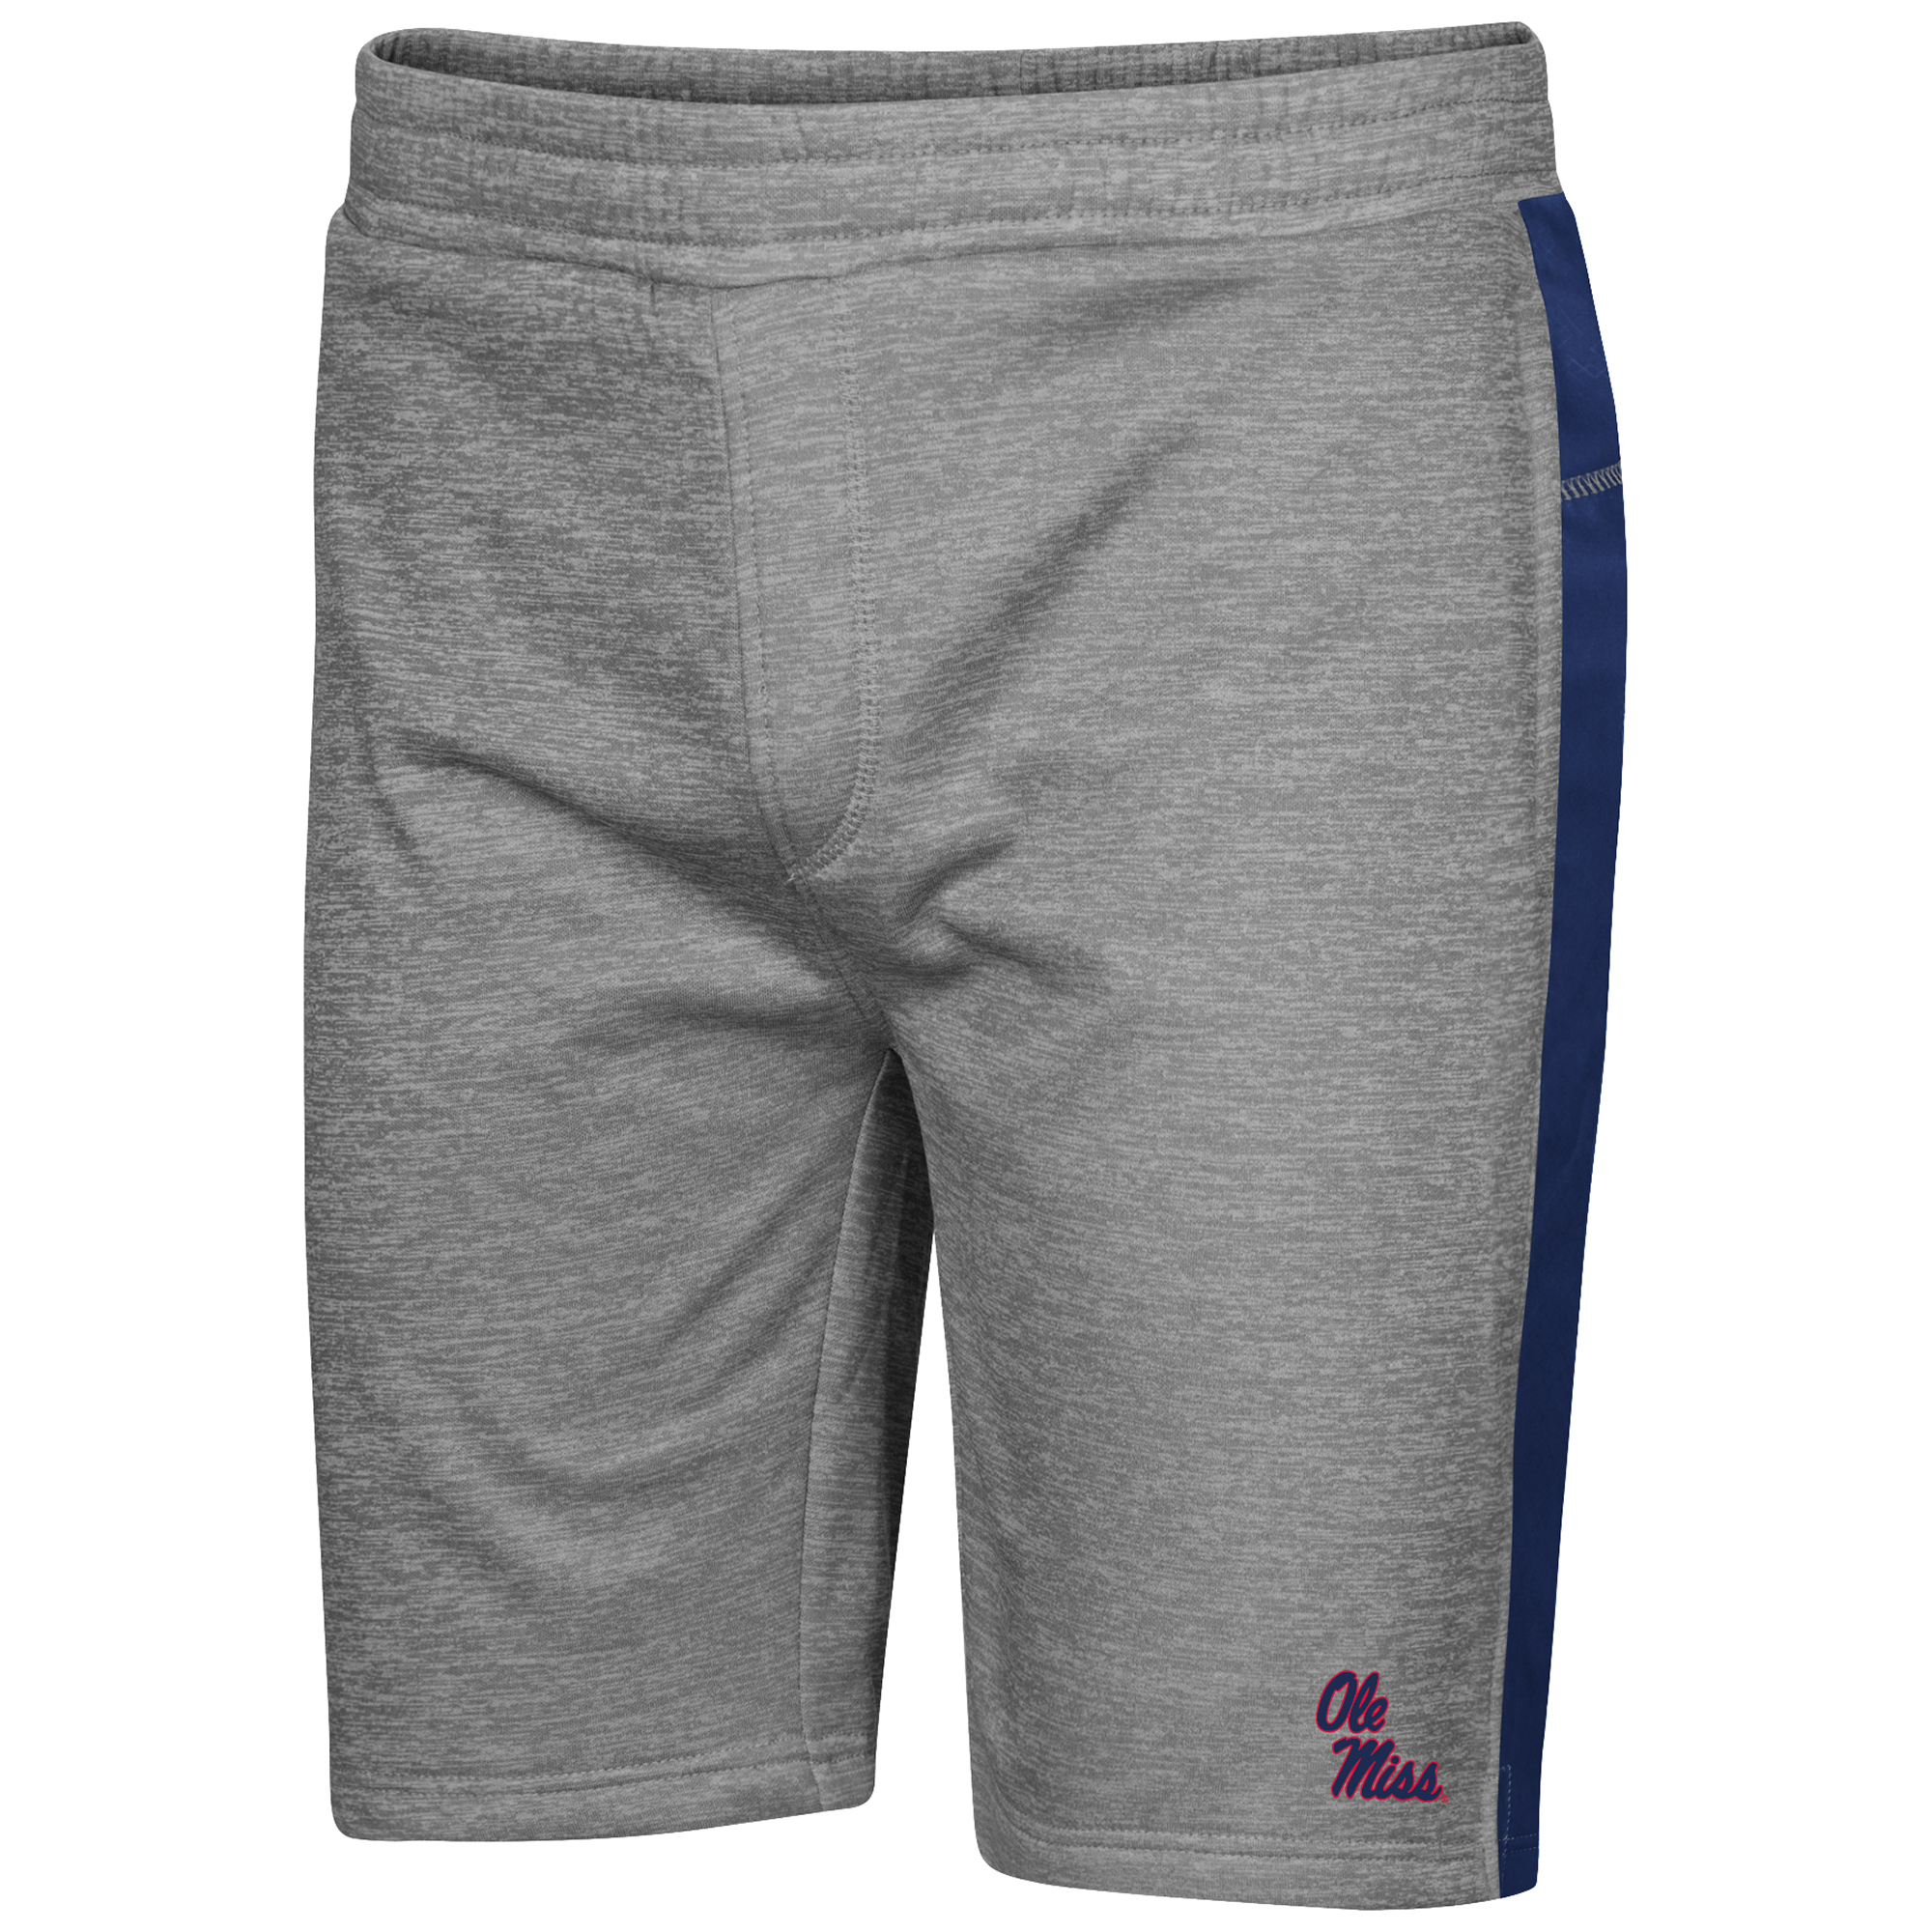 Mens Fleece Shorts